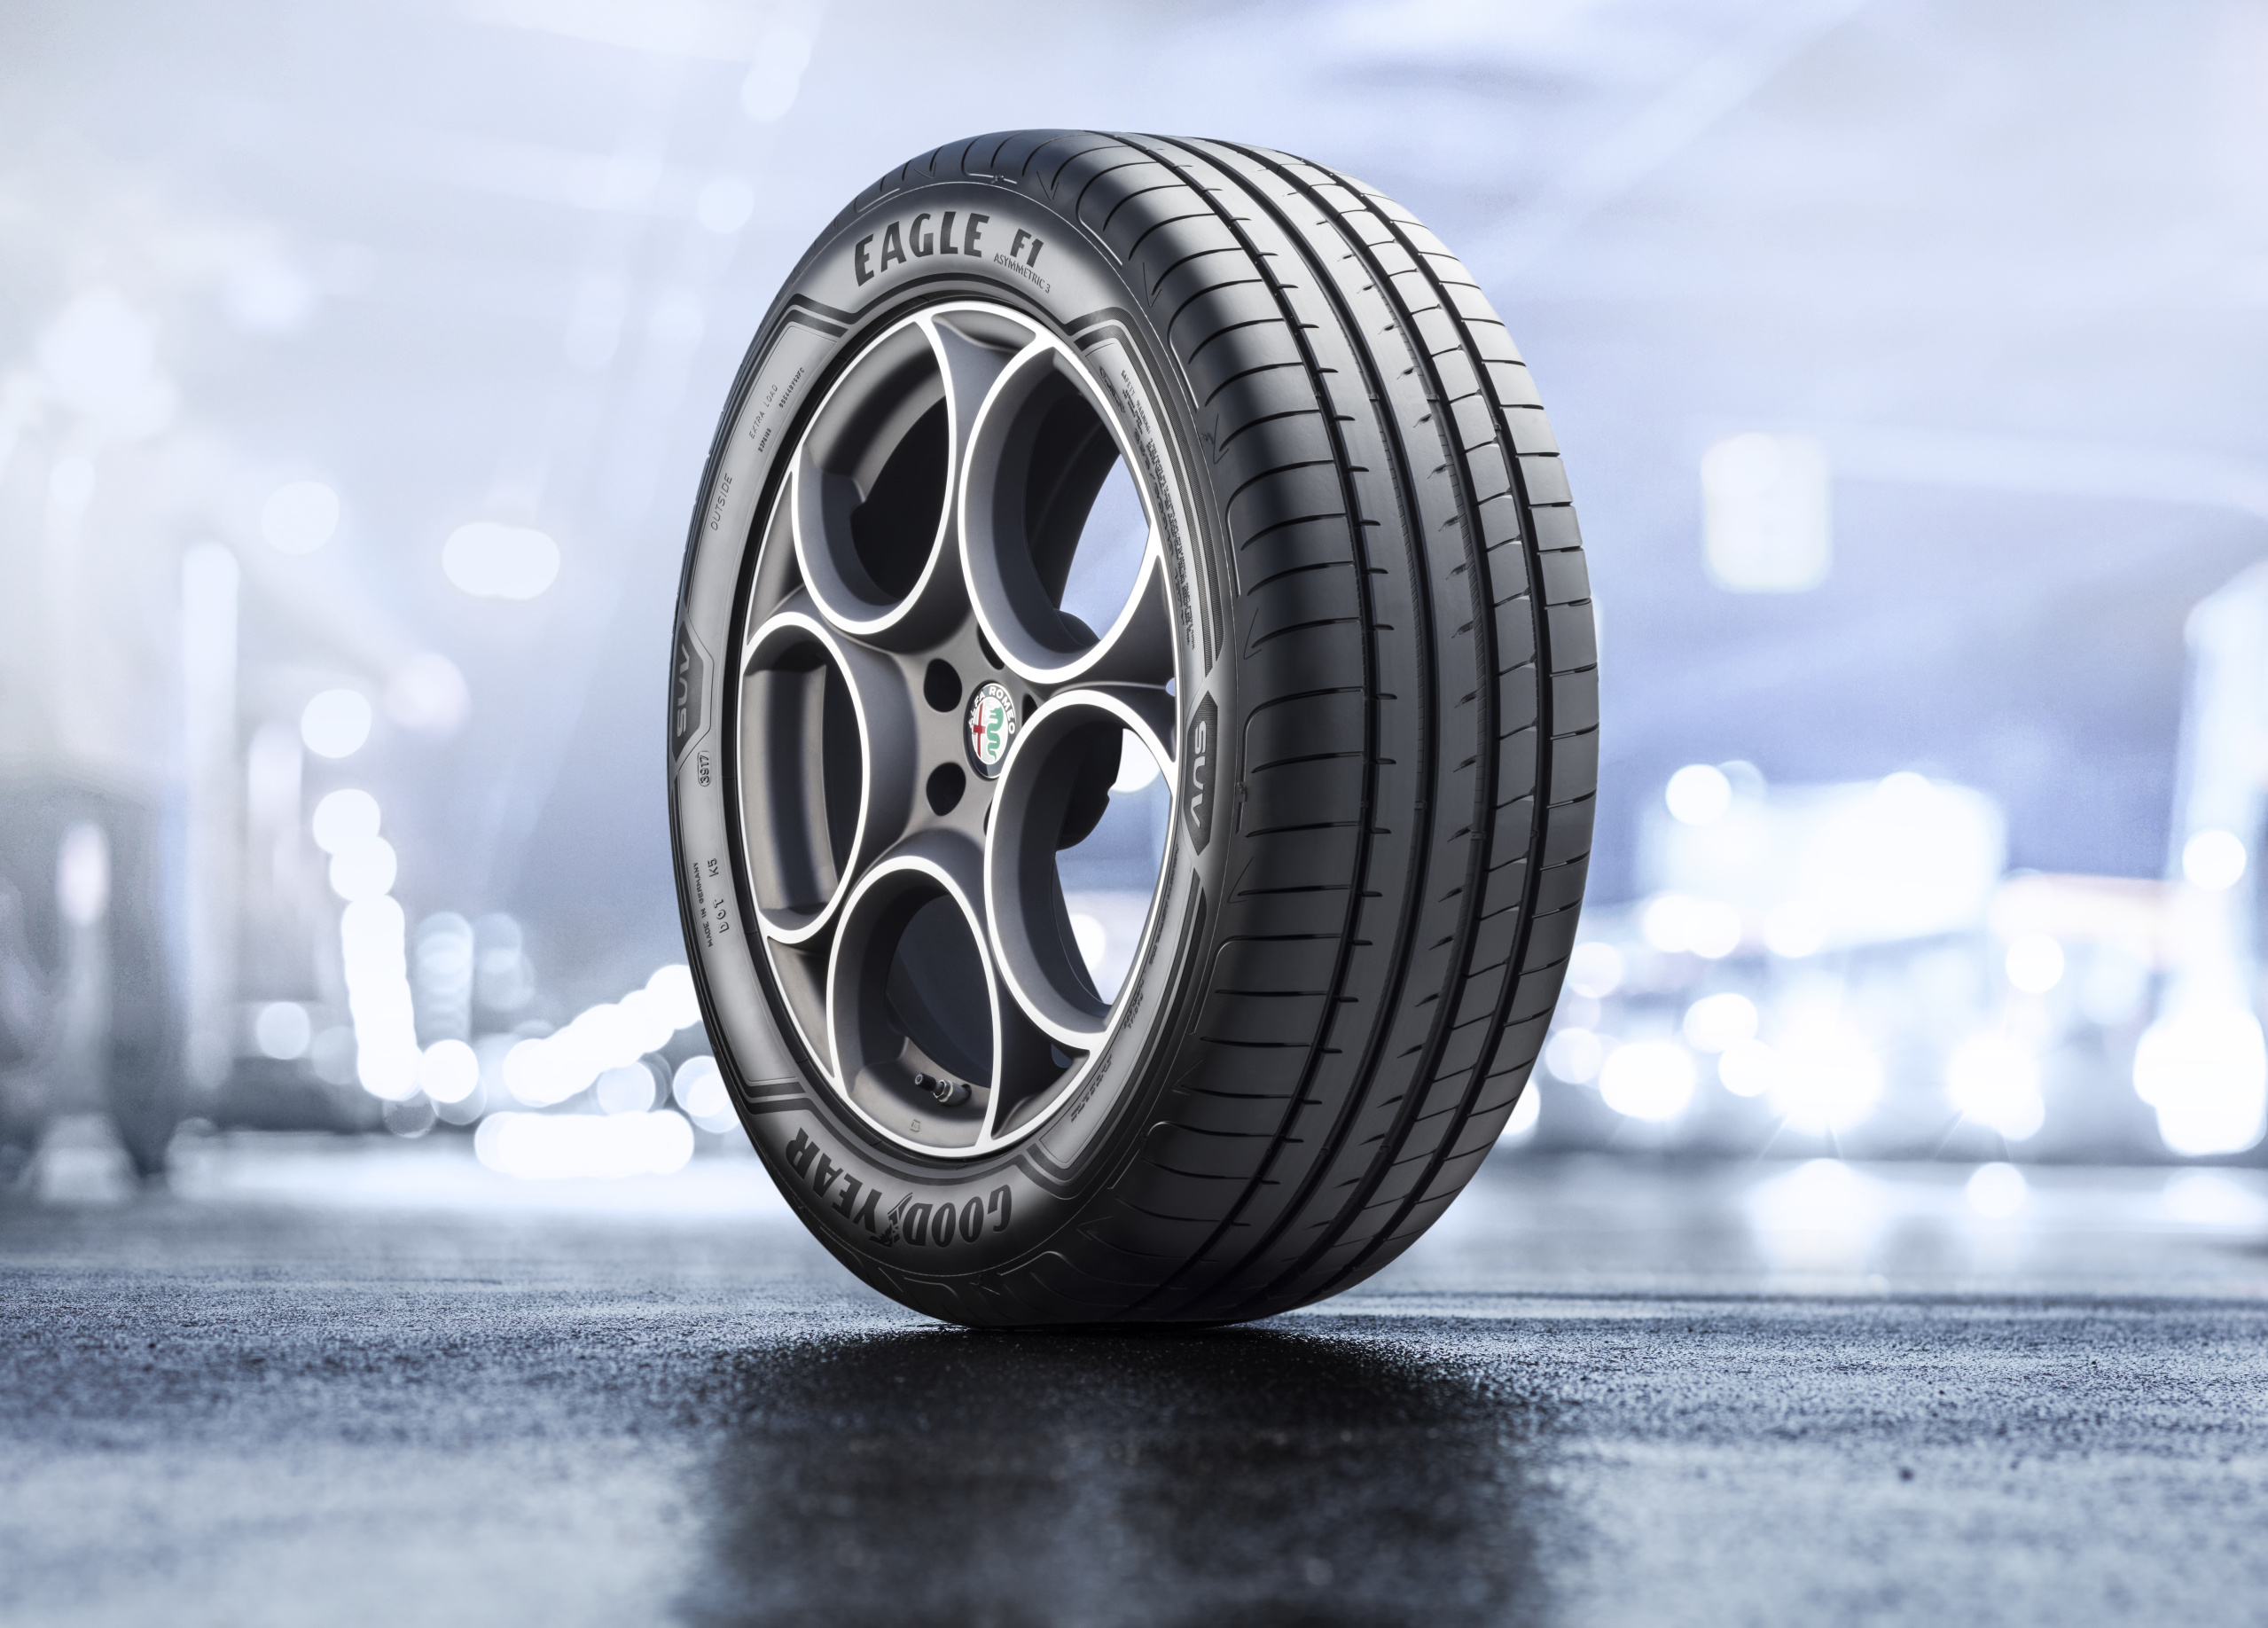 Goodyear Tire Rubber (GT): Stock's Stunning Activities